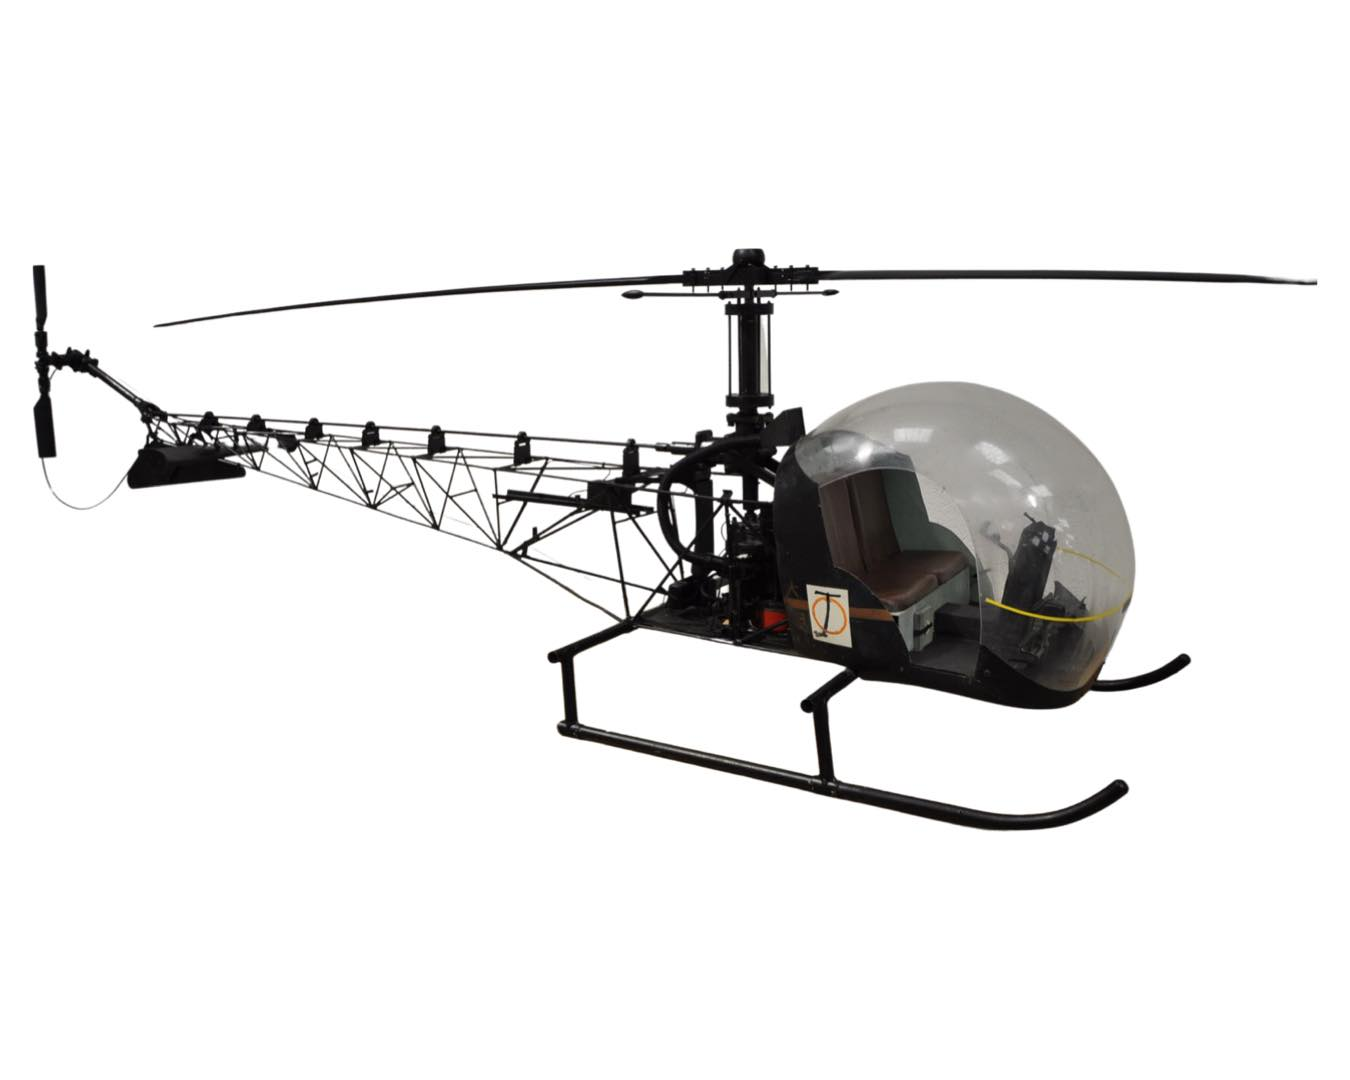 James Bond 007 Bell Model Helicopter used in 'You Only Live Twice'